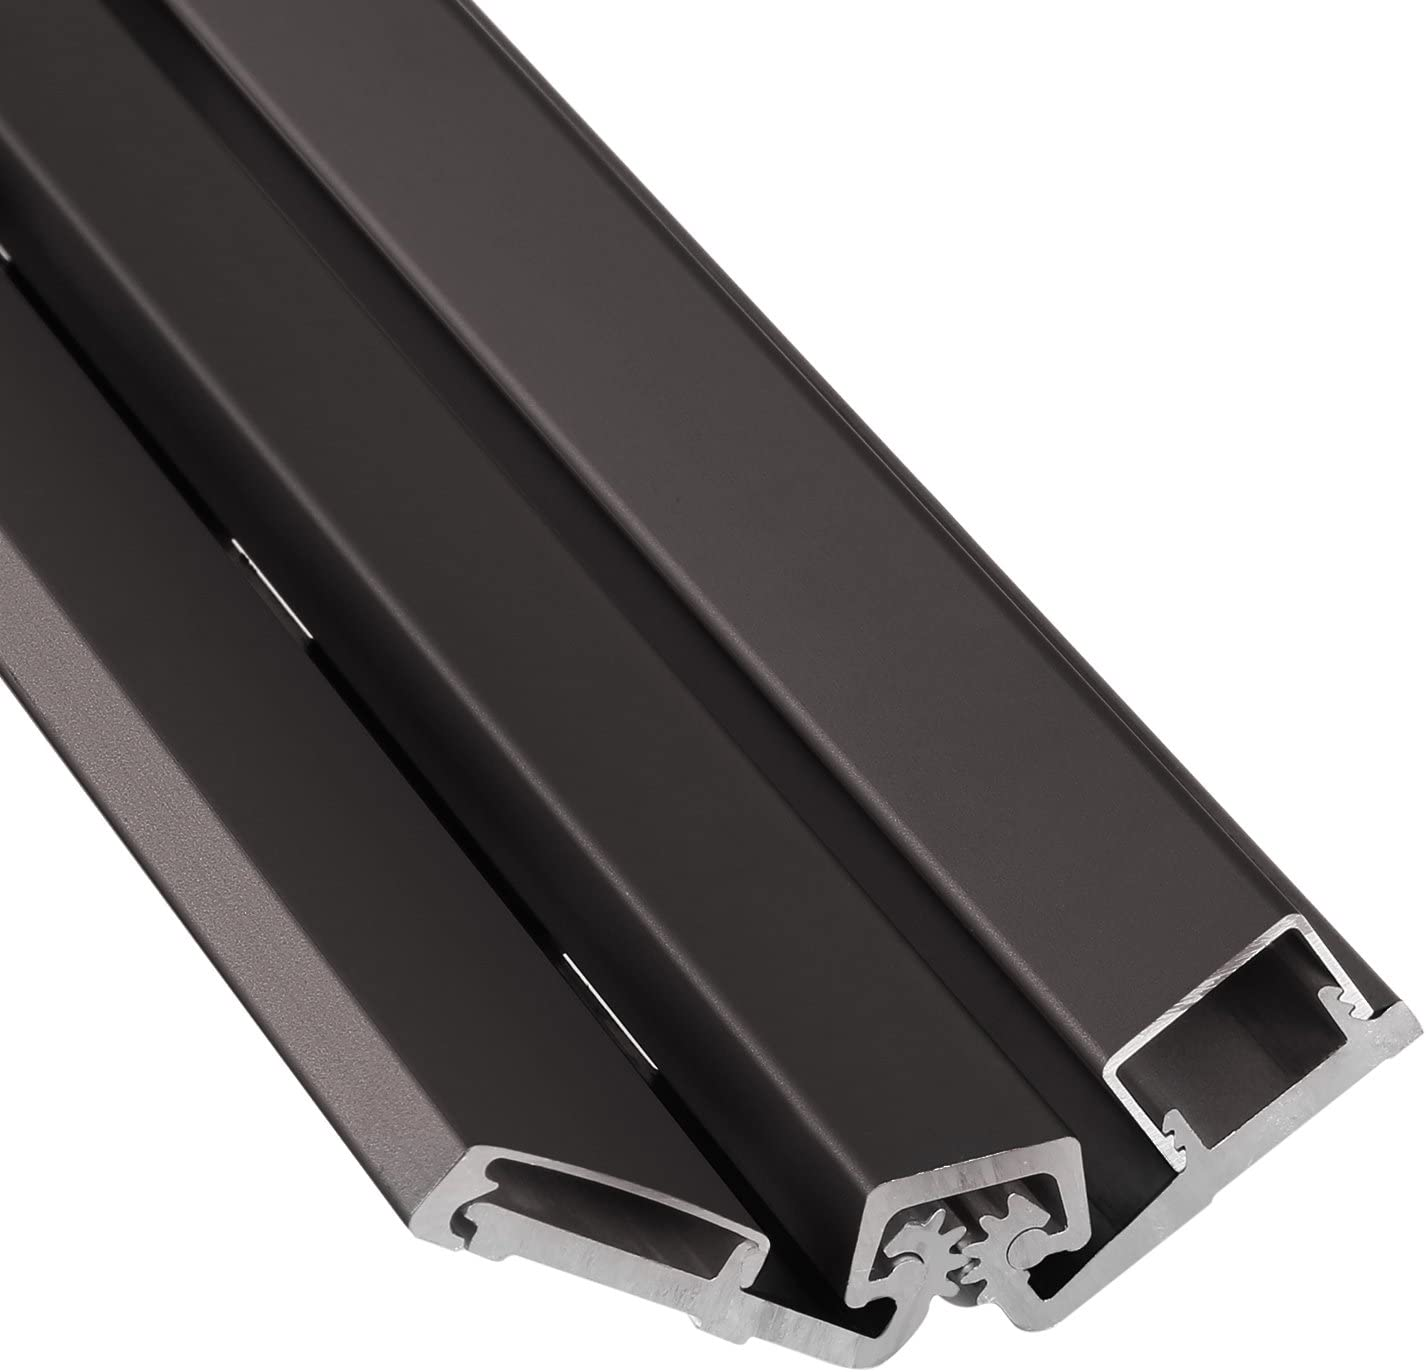 Anodized Center Pivot Dark Bronze-DU 83 inch Tamperproof great for repairing Storefront doors Heavy Duty Continuous Geared Hinge Compare to Select SL57 by Lawrence Hardware LHHD157 Full Surface